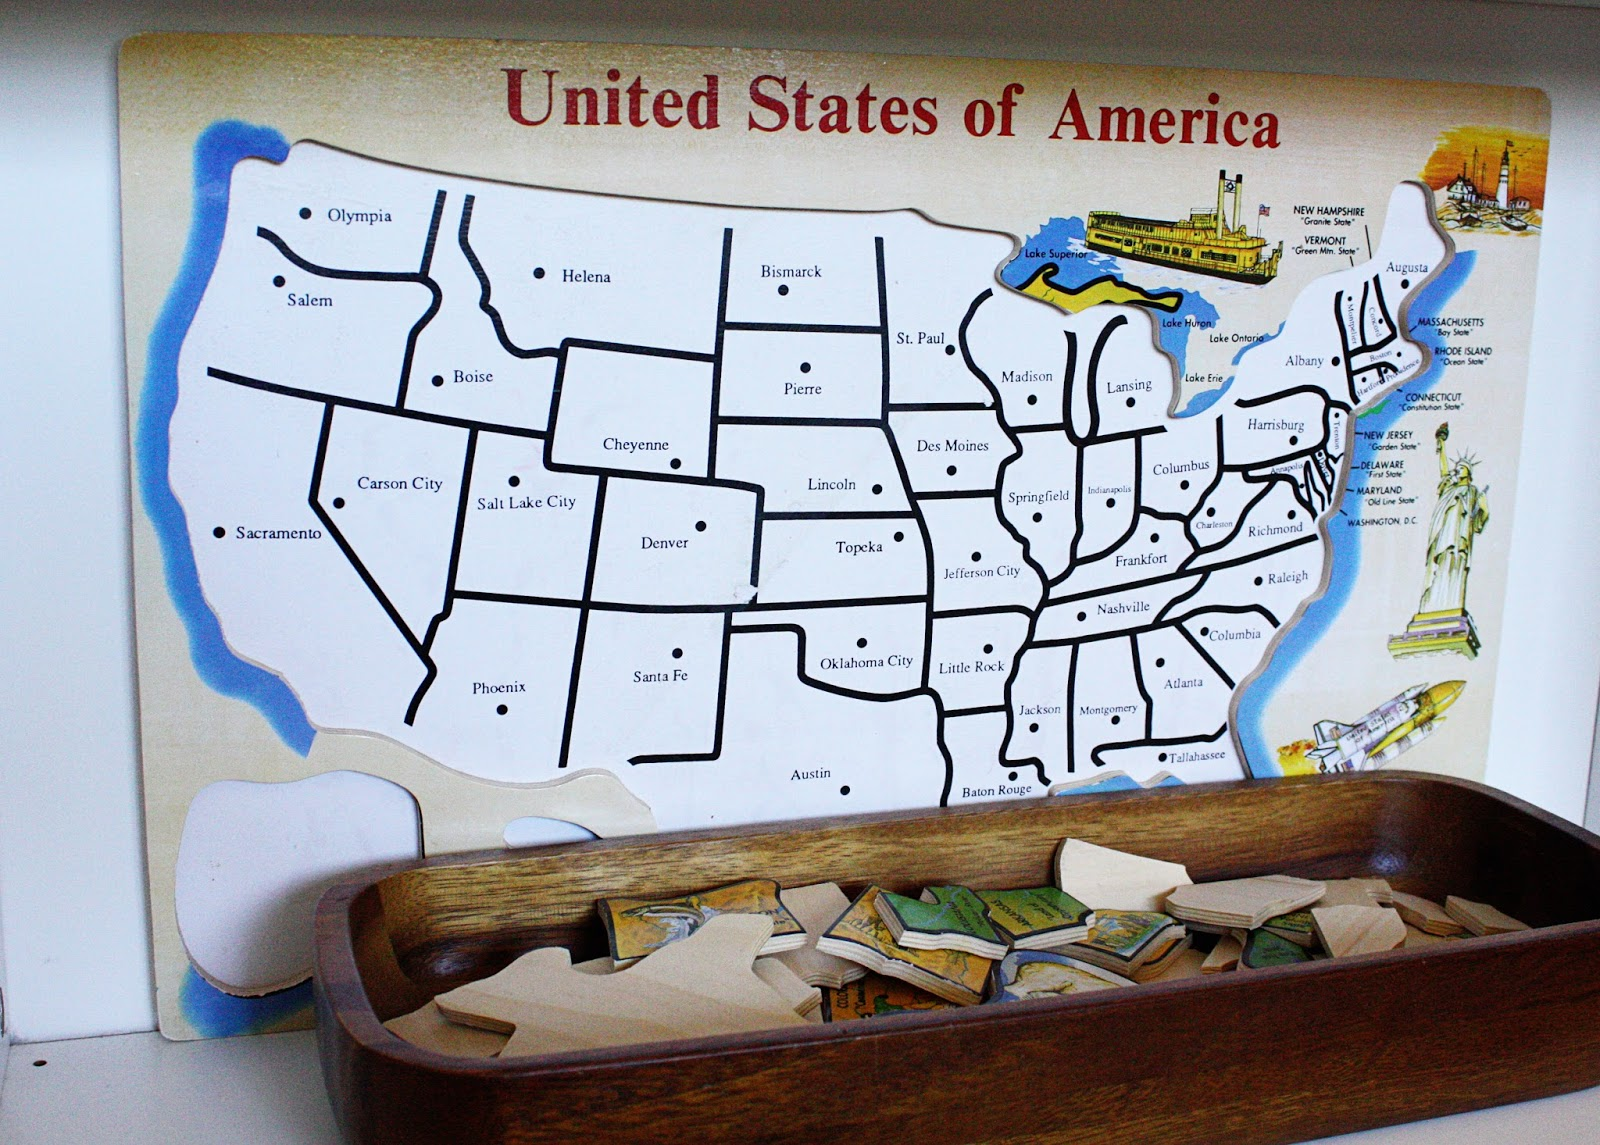 a wooden puzzle map of the united states like this one is a really great toy to have around and it was perfect for learning the geography and capitols of